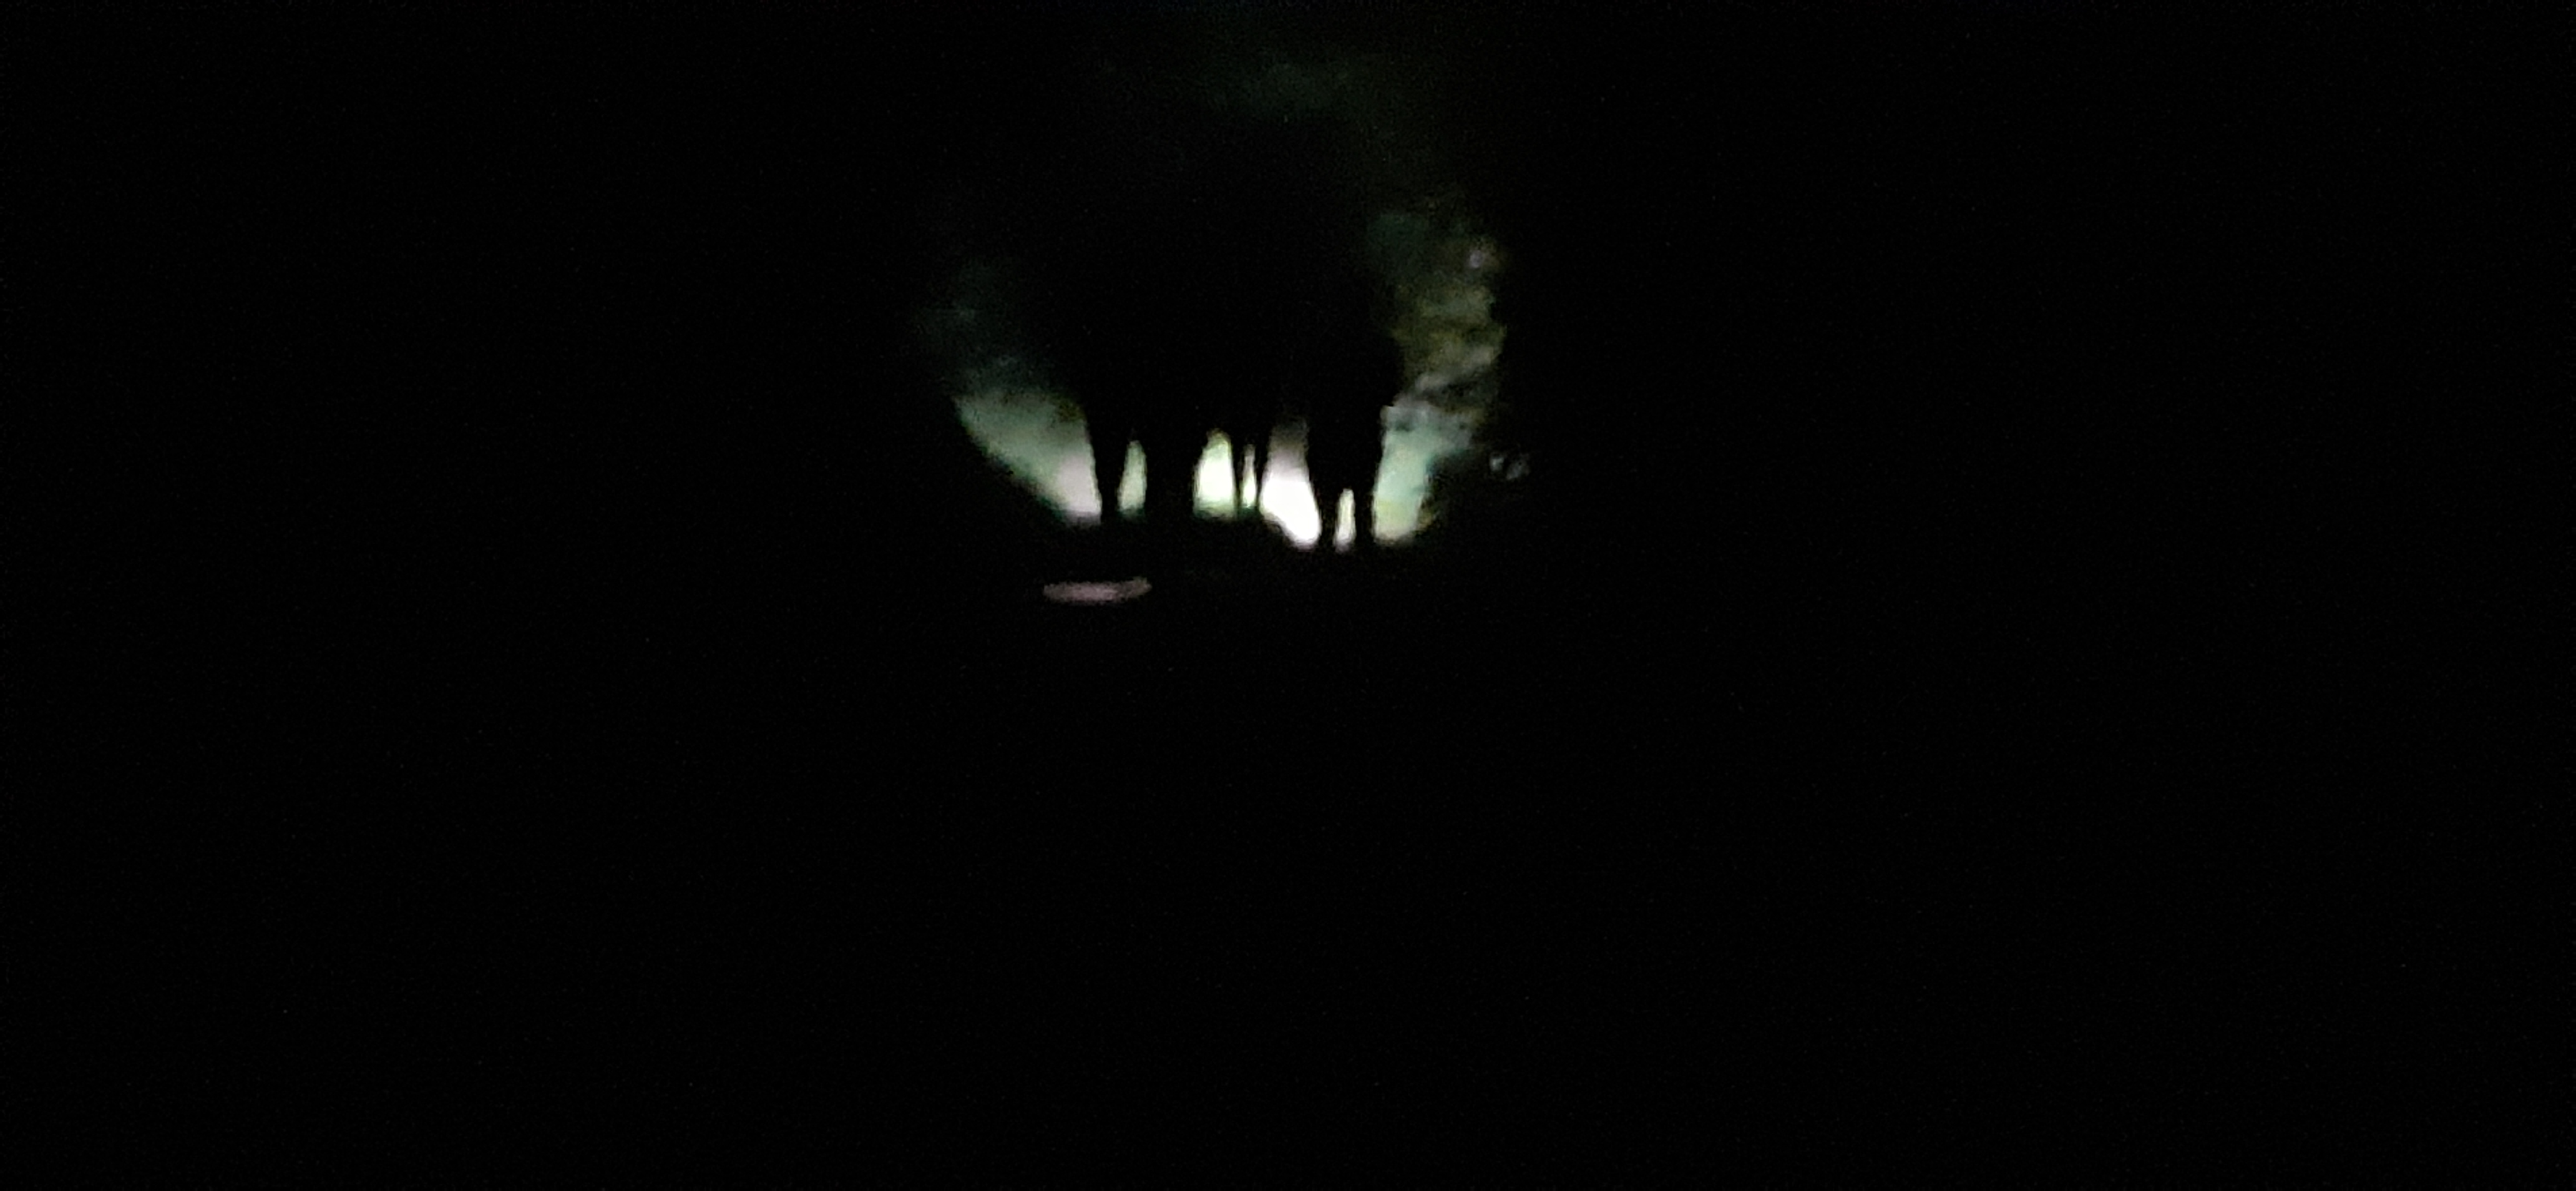 Night Walk in the dark